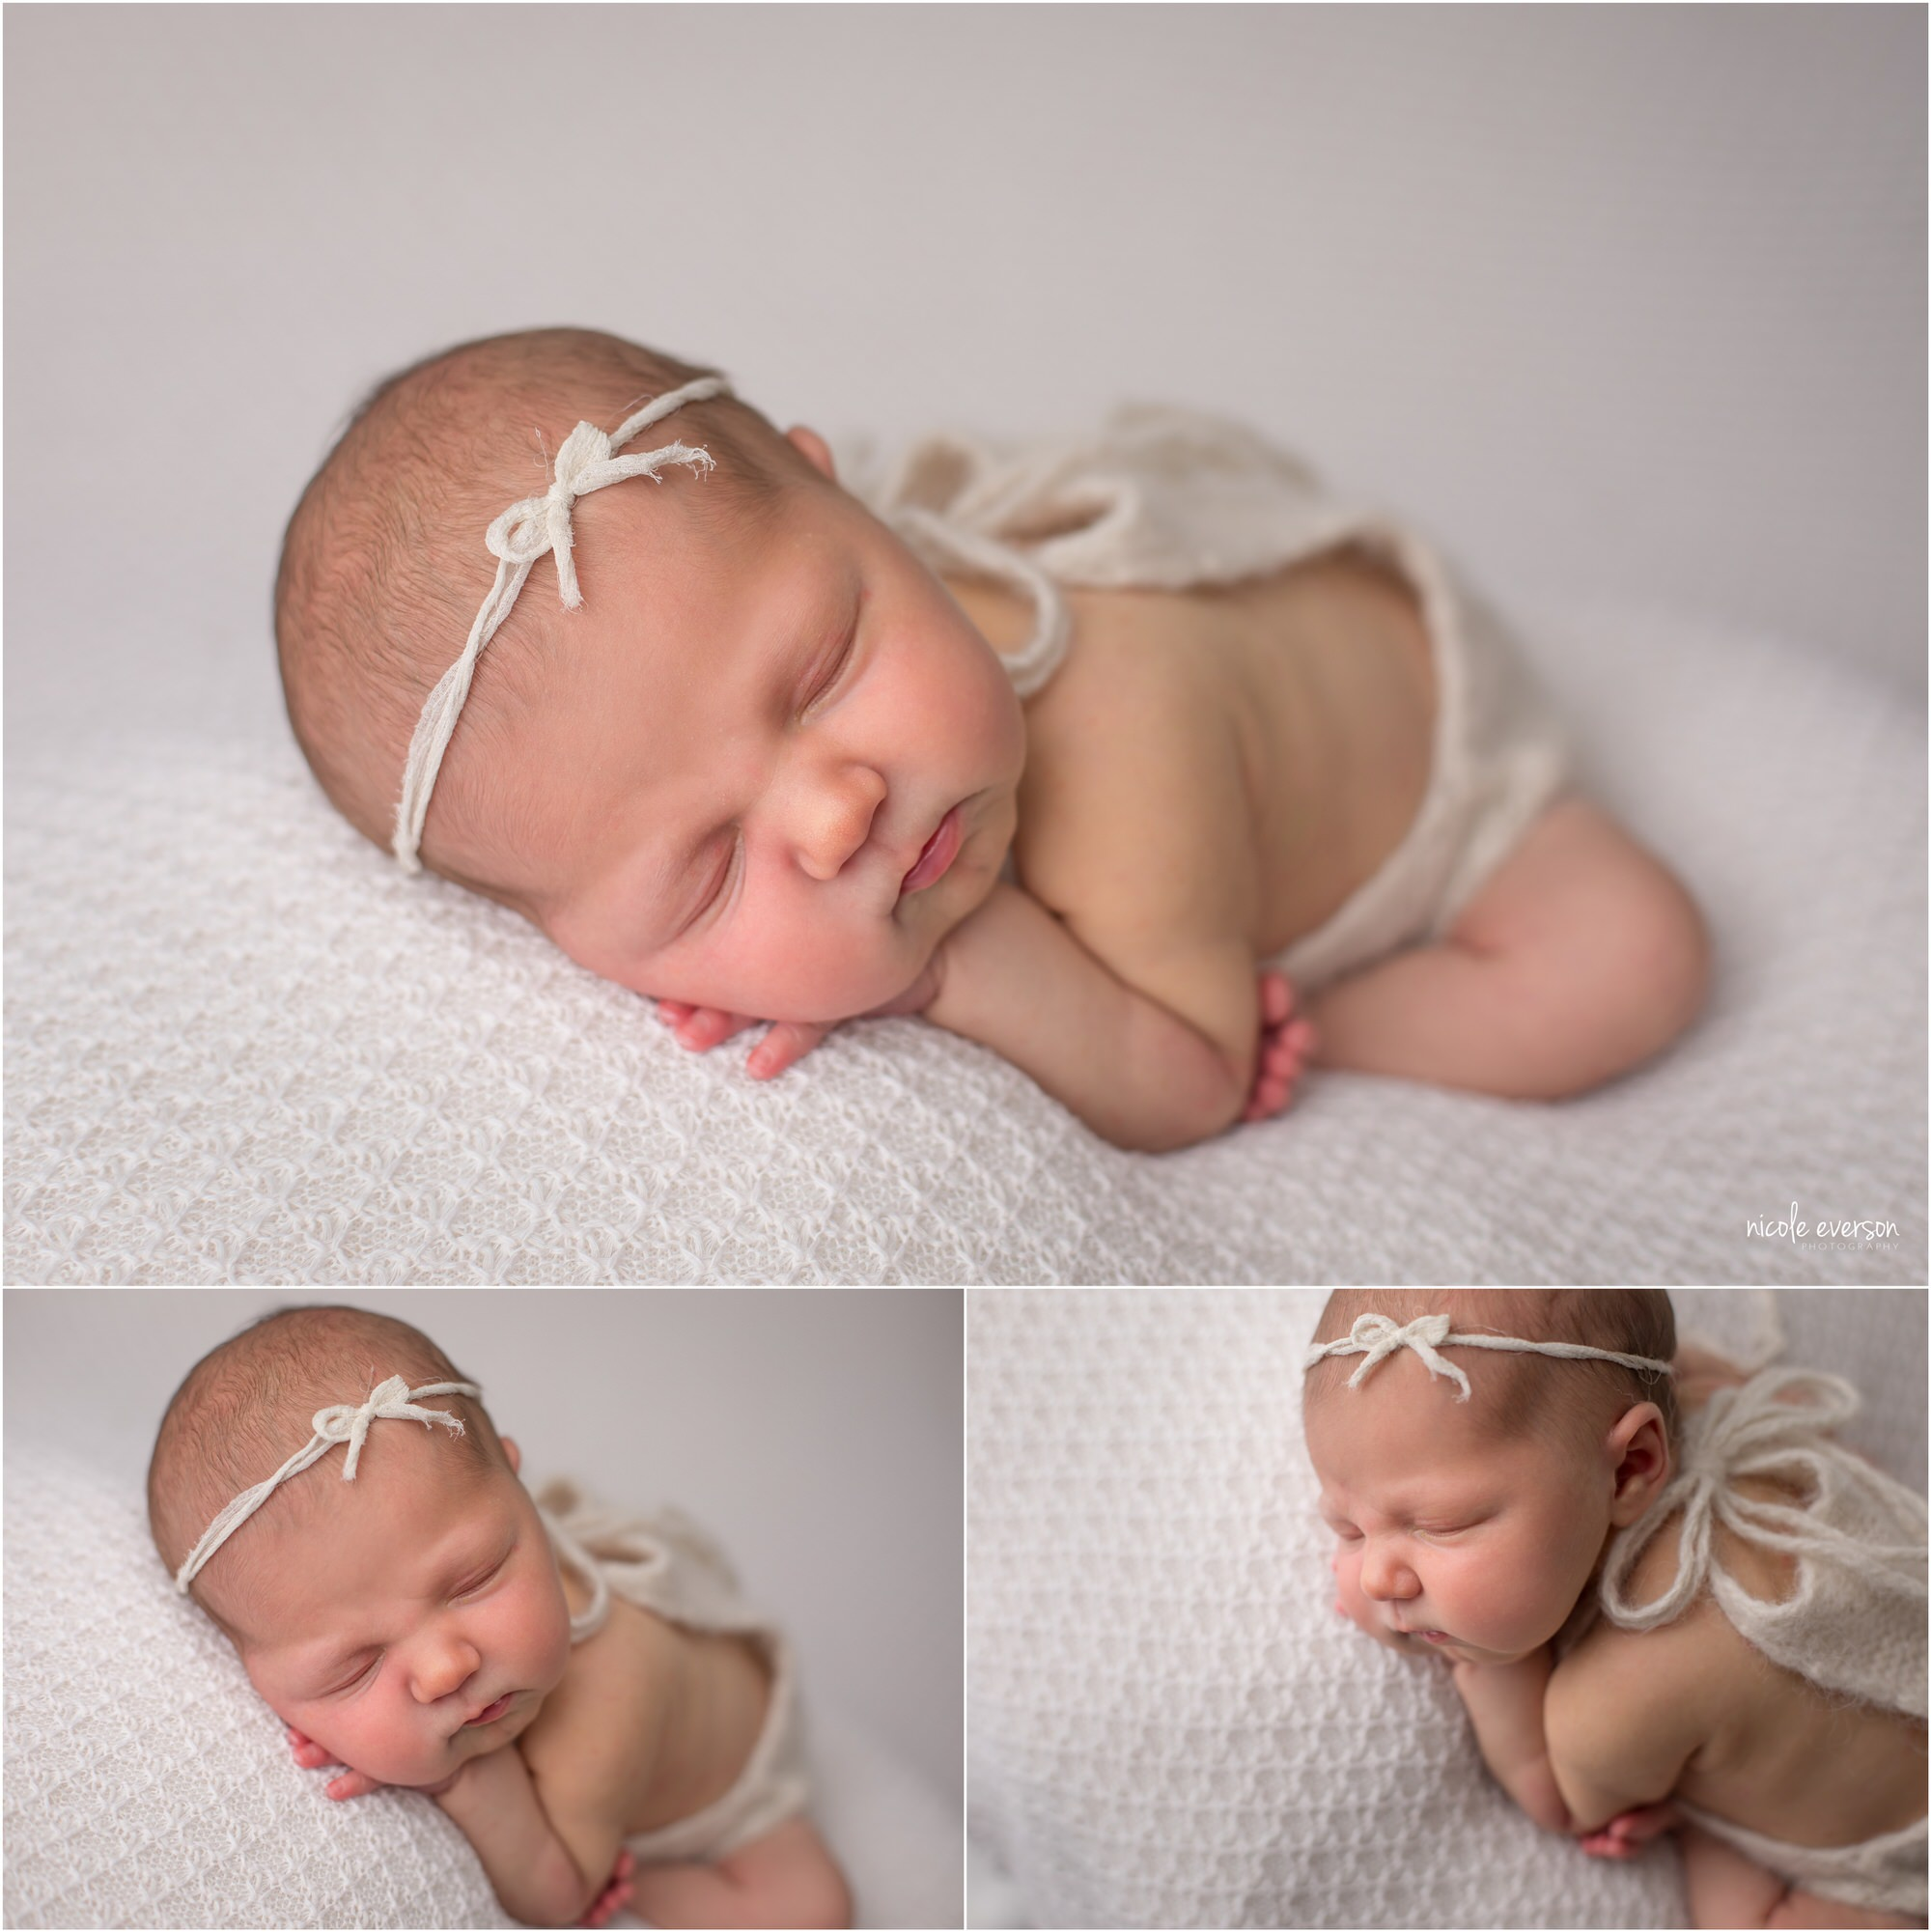 newborn pictures of a baby girl sleeping on a white backdrop